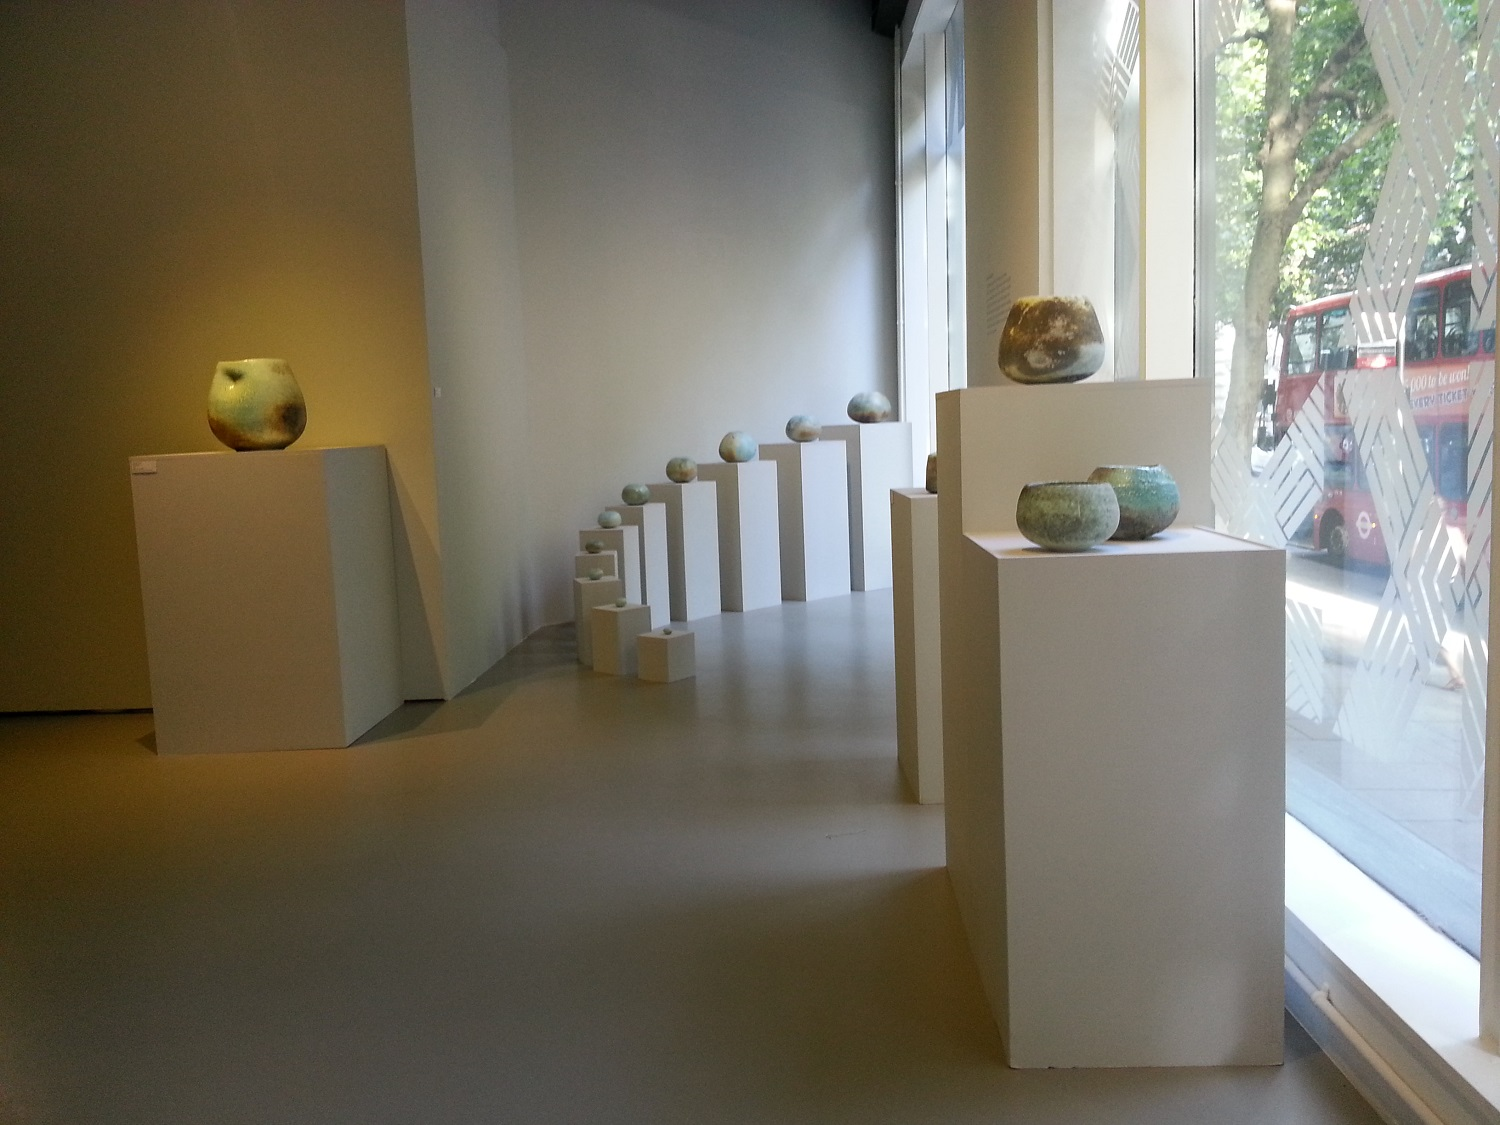 Moon Jar Exhibition Celebrates The Beauty Of Imperfection